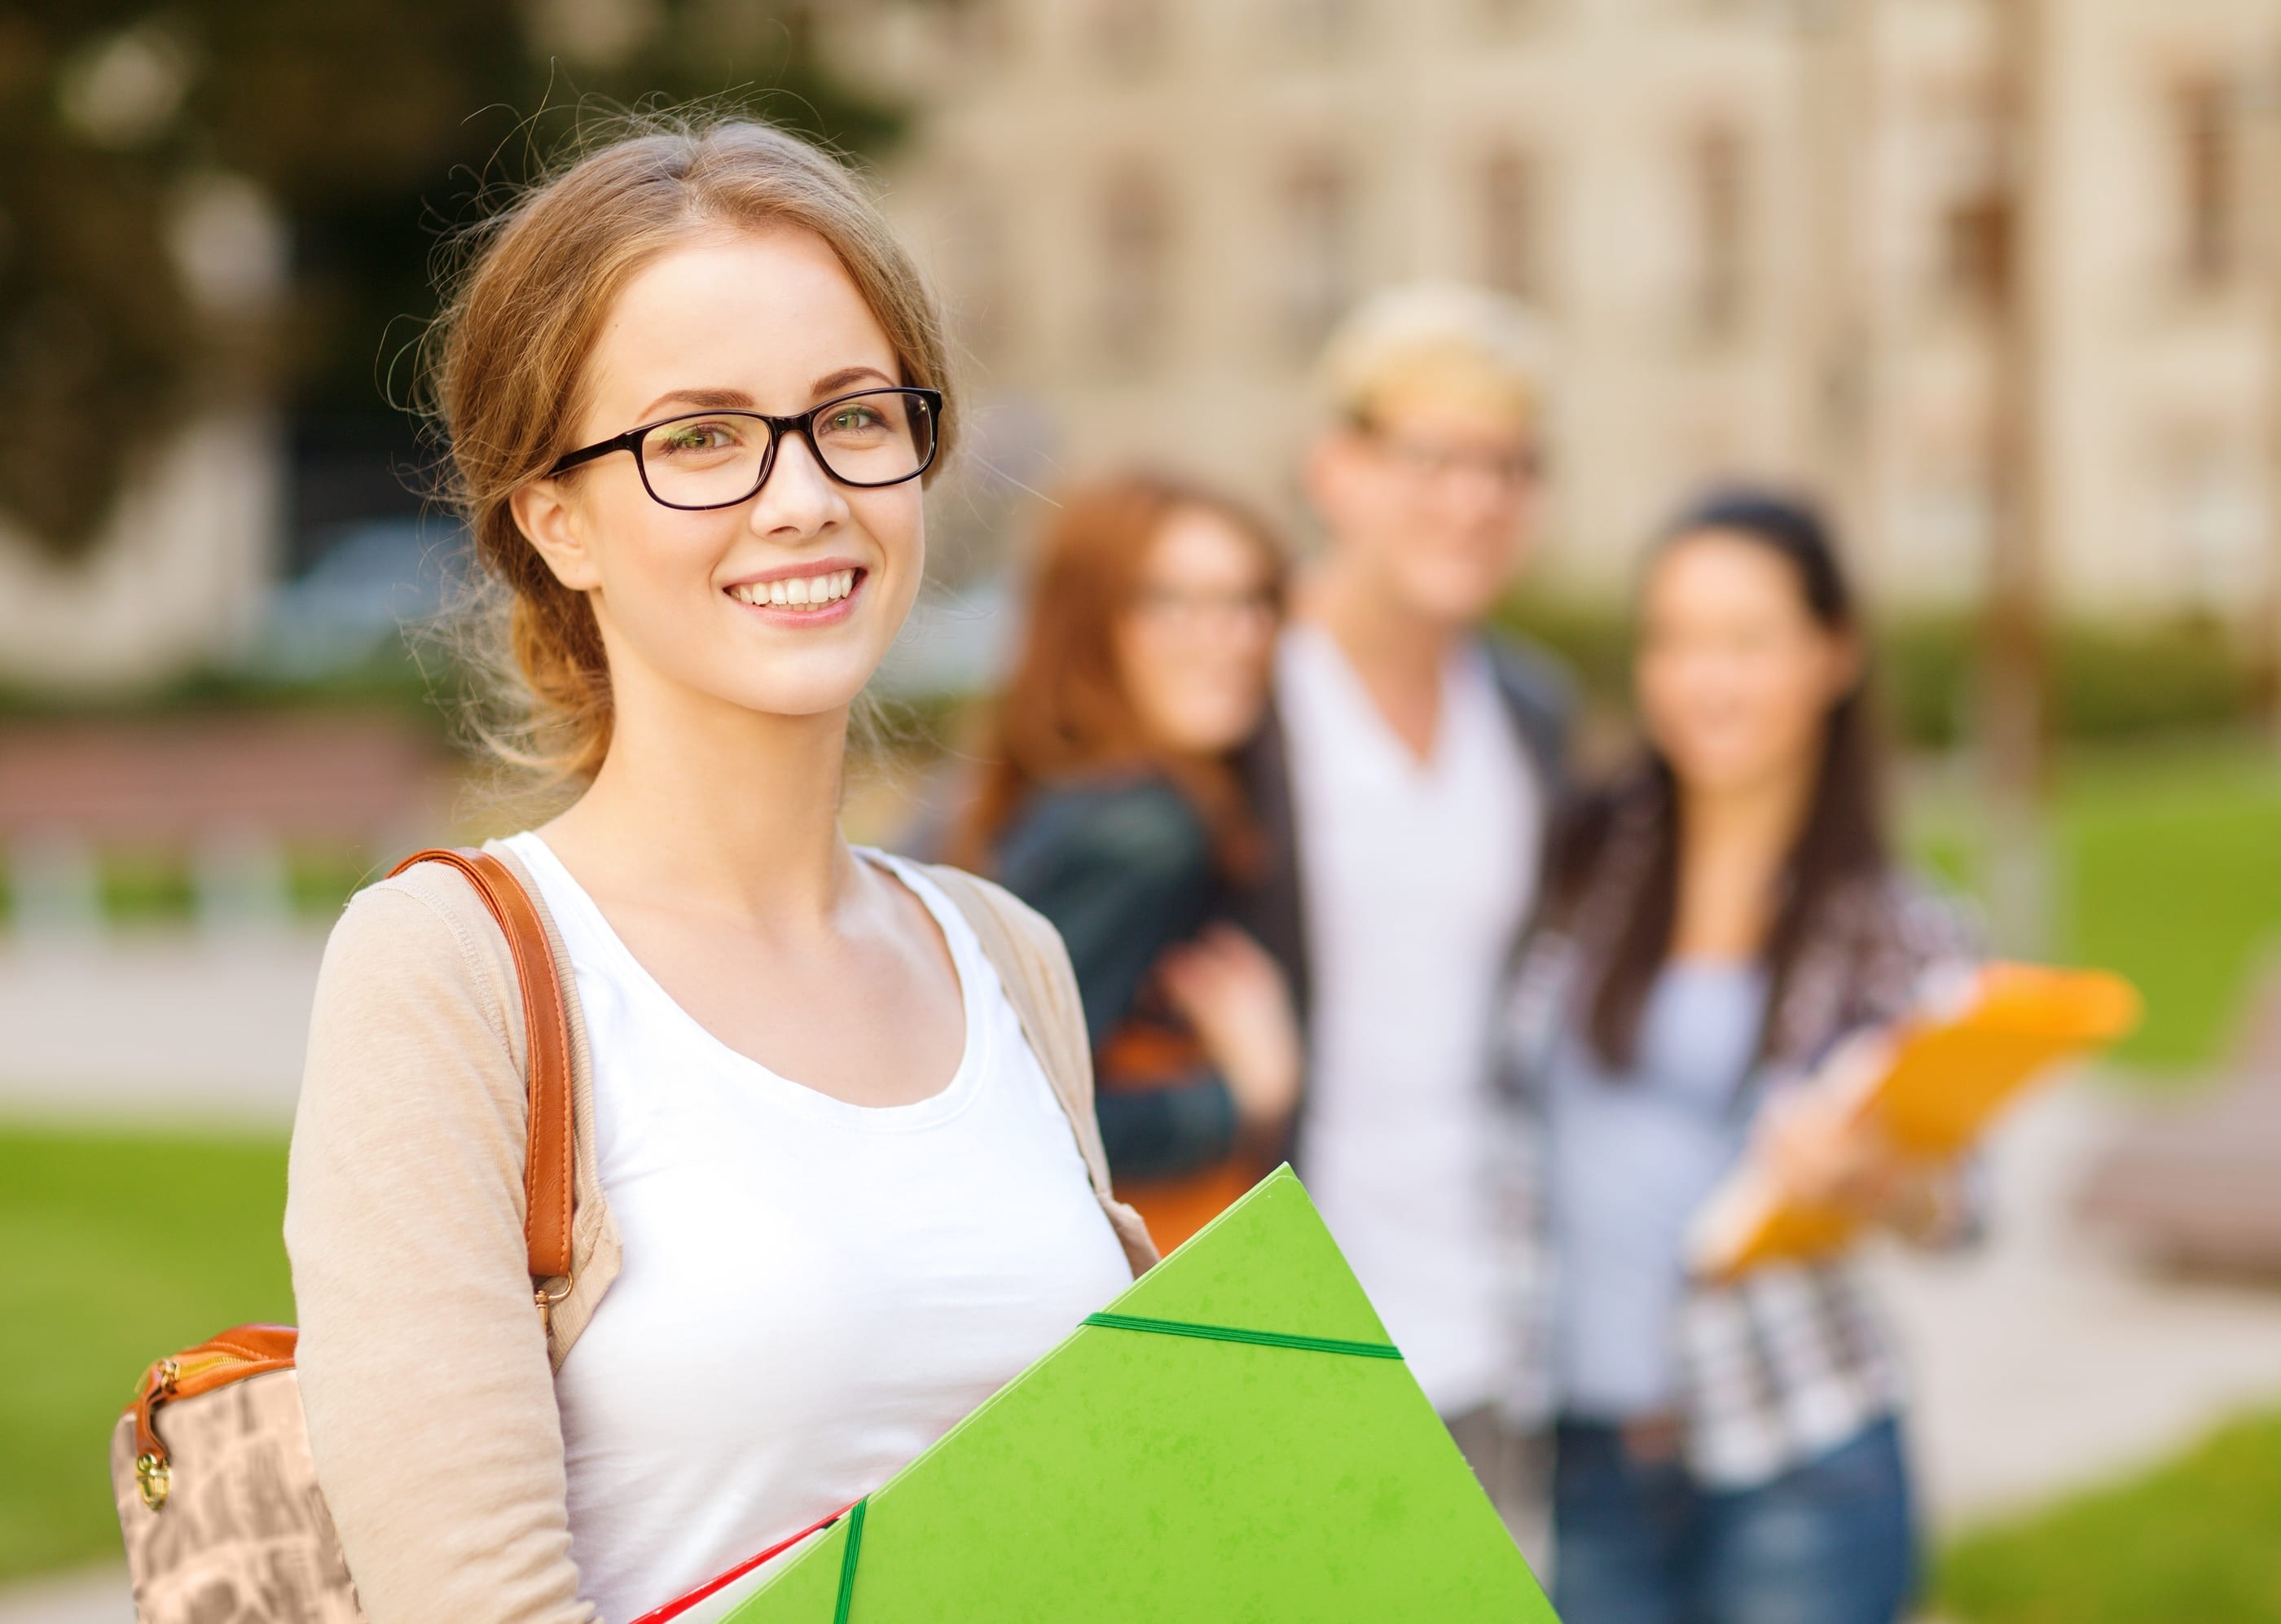 9 Ways to Start Your Semester on the Right Note